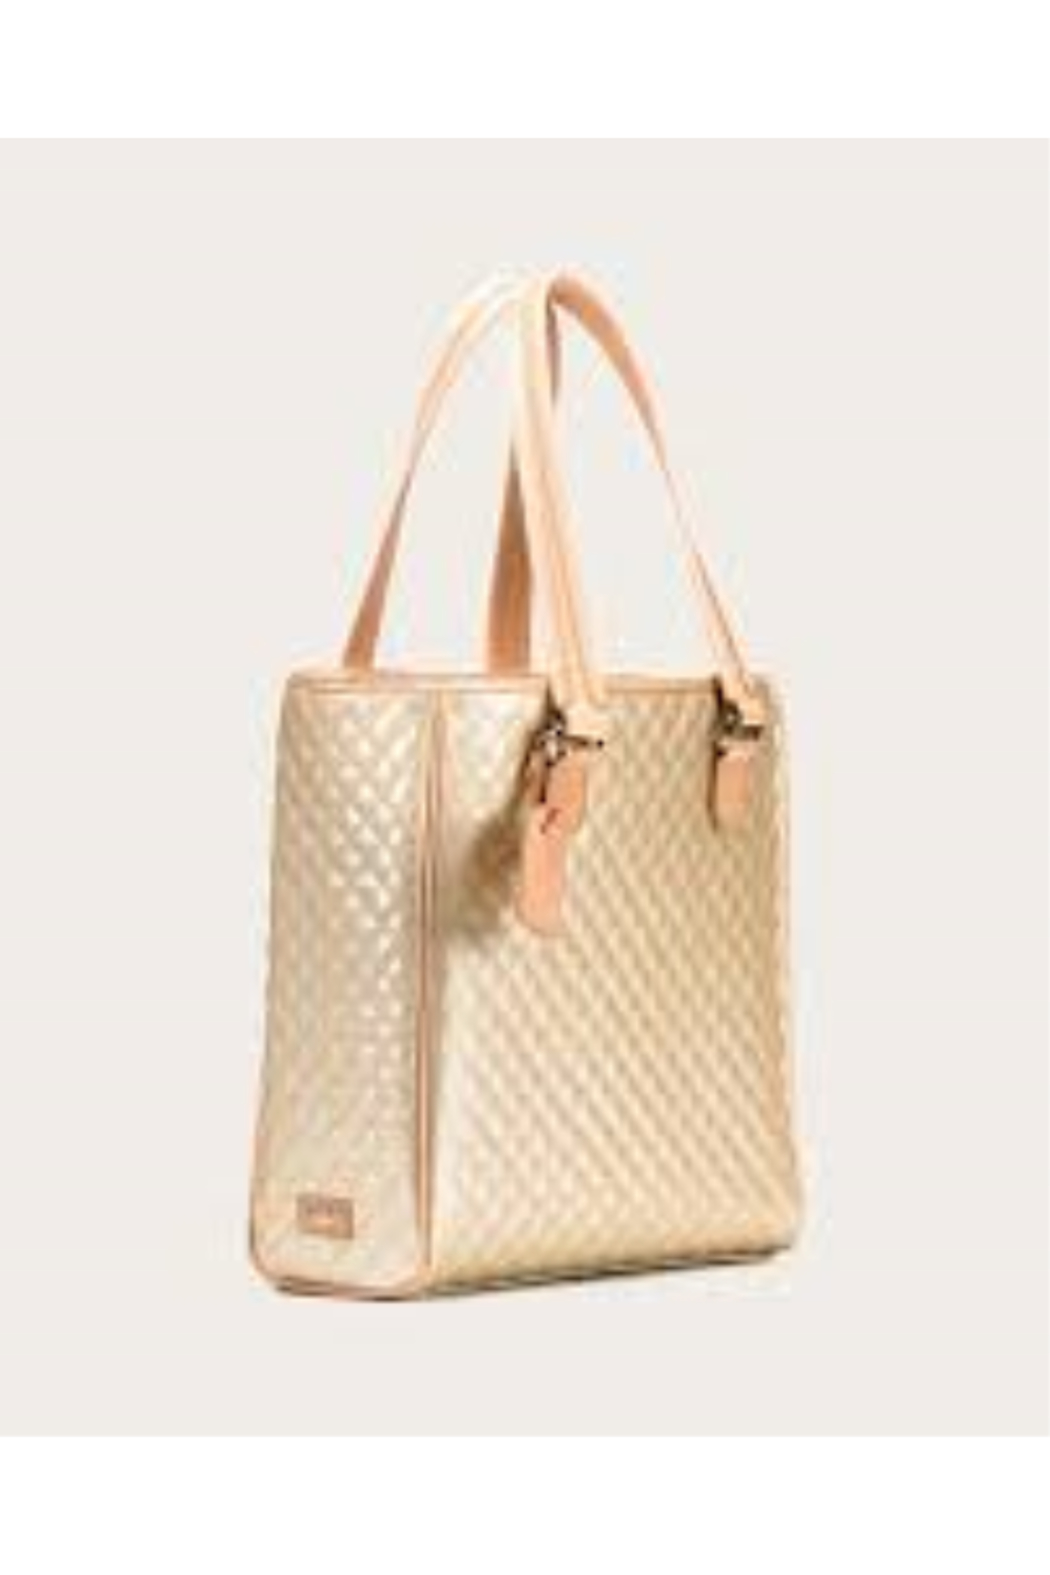 The Birds Nest CLASSIC TOTE-CANDY CHAMPAGNE - Main Image